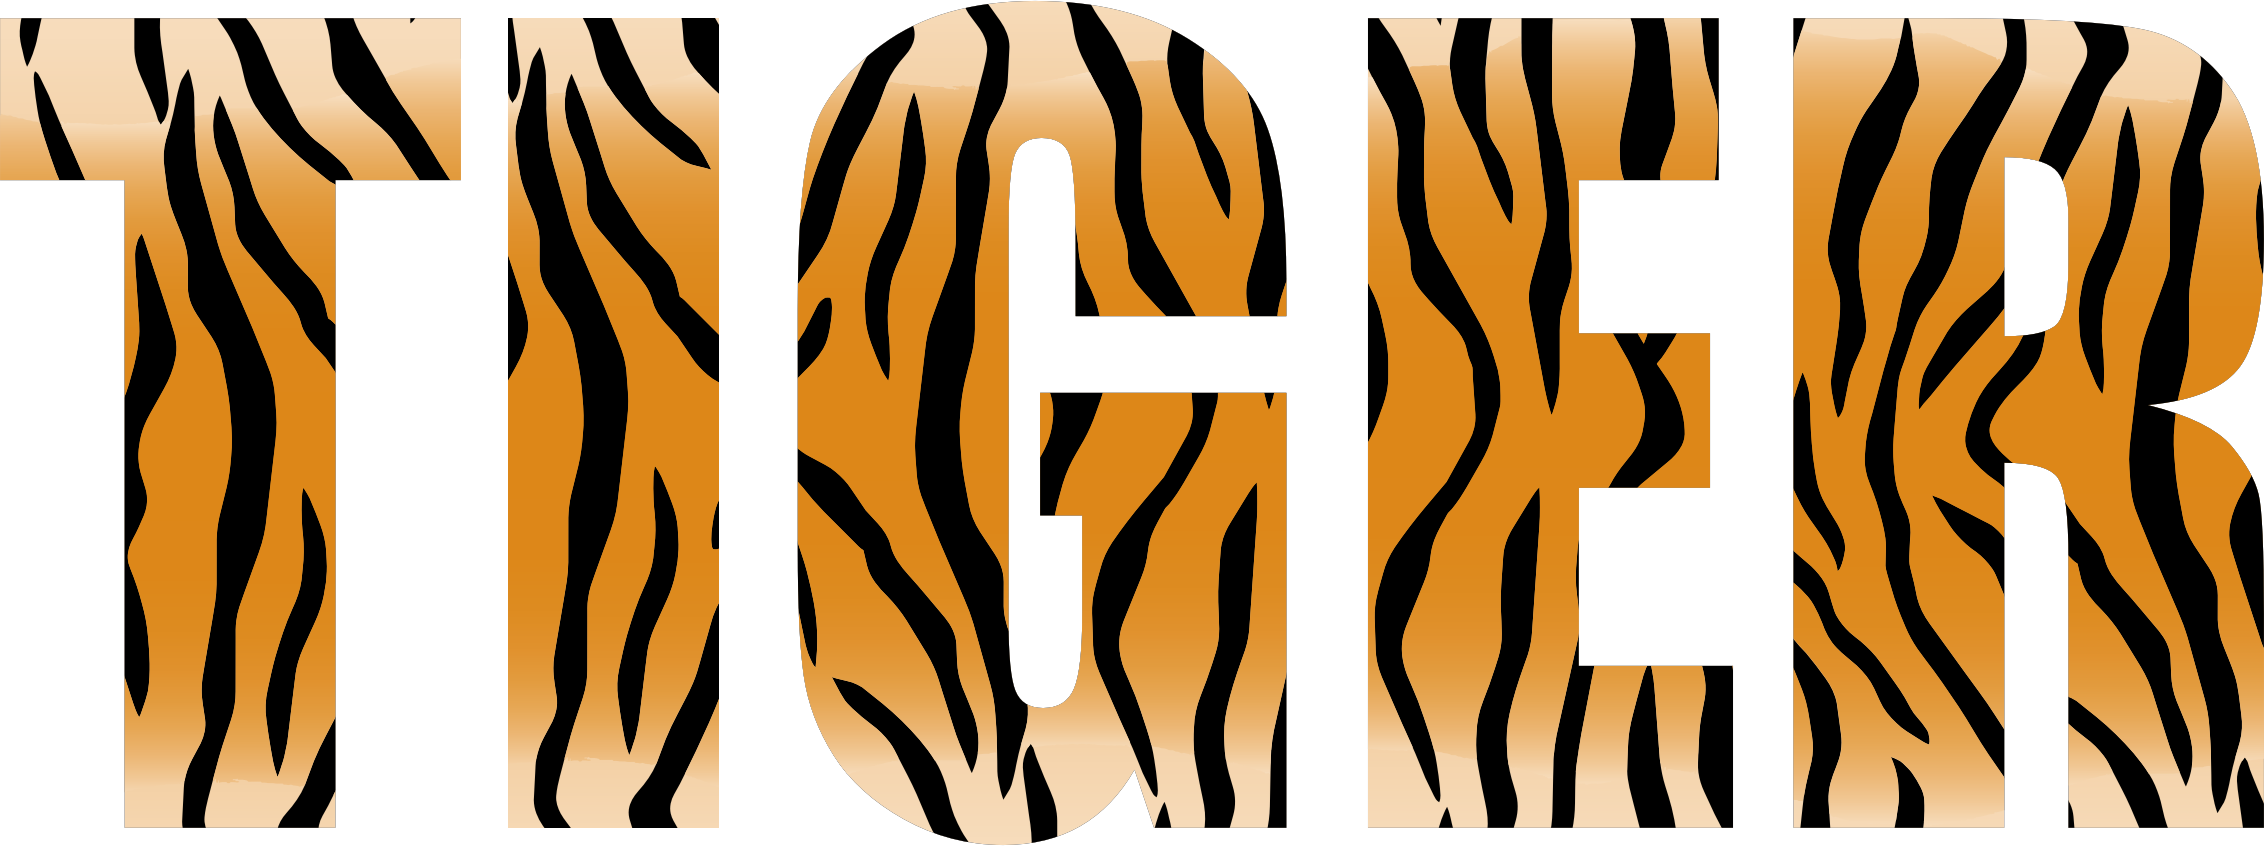 Word clipart tigers Tiger Typography Clipart Tiger Typography